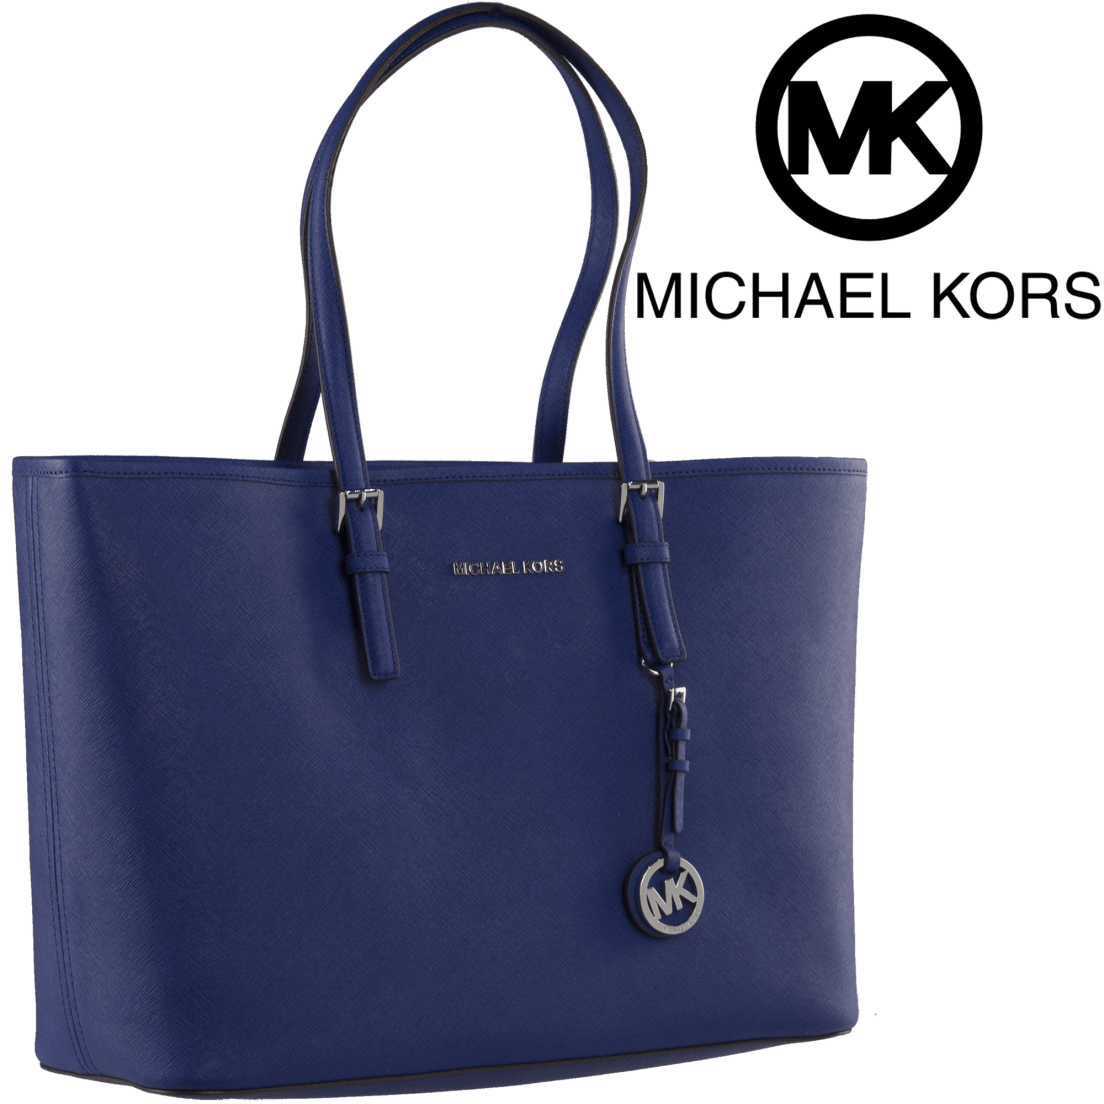 94ab6448c71438 Michael Kors Jet Set Travel Medium Saffiano Leather Top-Zip Tote in Blue